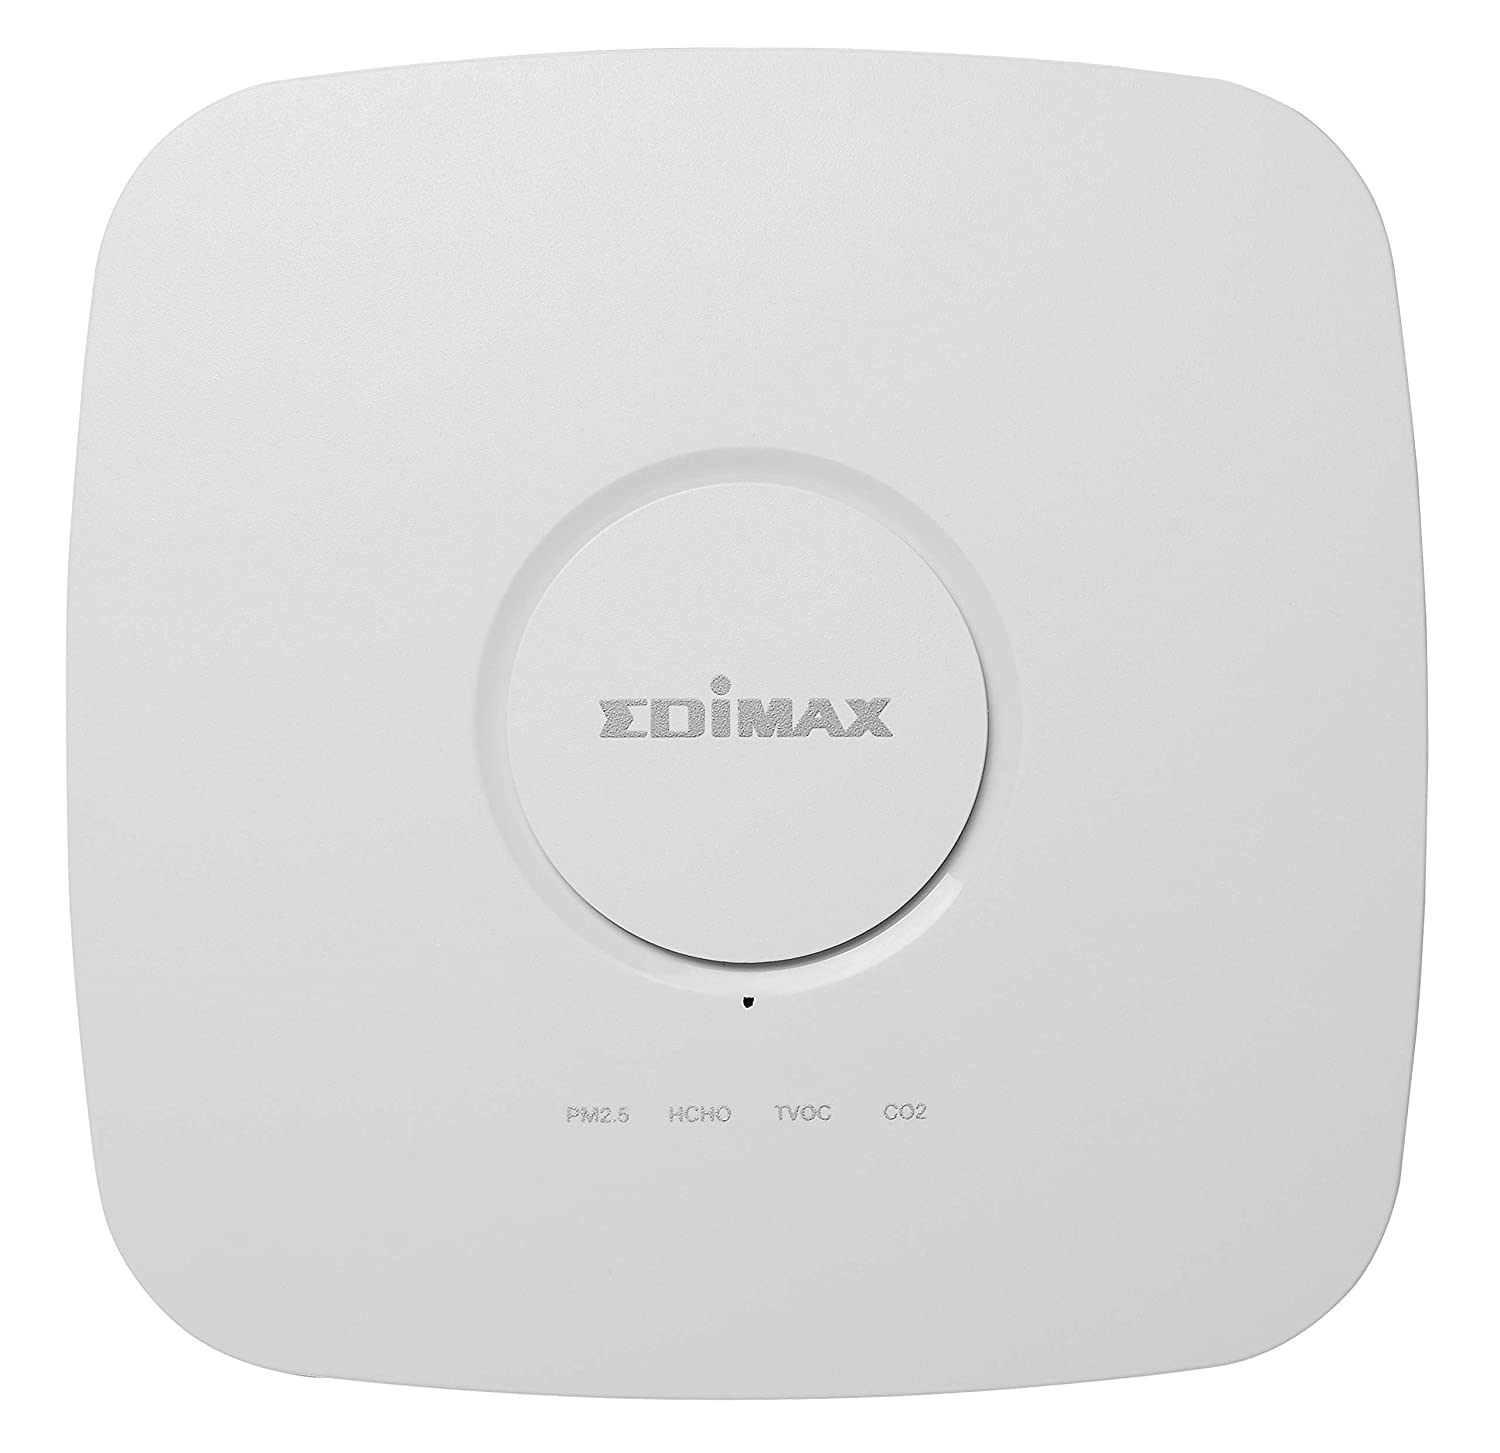 Edimax AI-2002W, Airbox : 7-in-1 Multi-Sensor Indoor Air Quality Detector with PM2.5, PM10, CO2, TVOC, HCHO, Temperature and Humidity Sensors